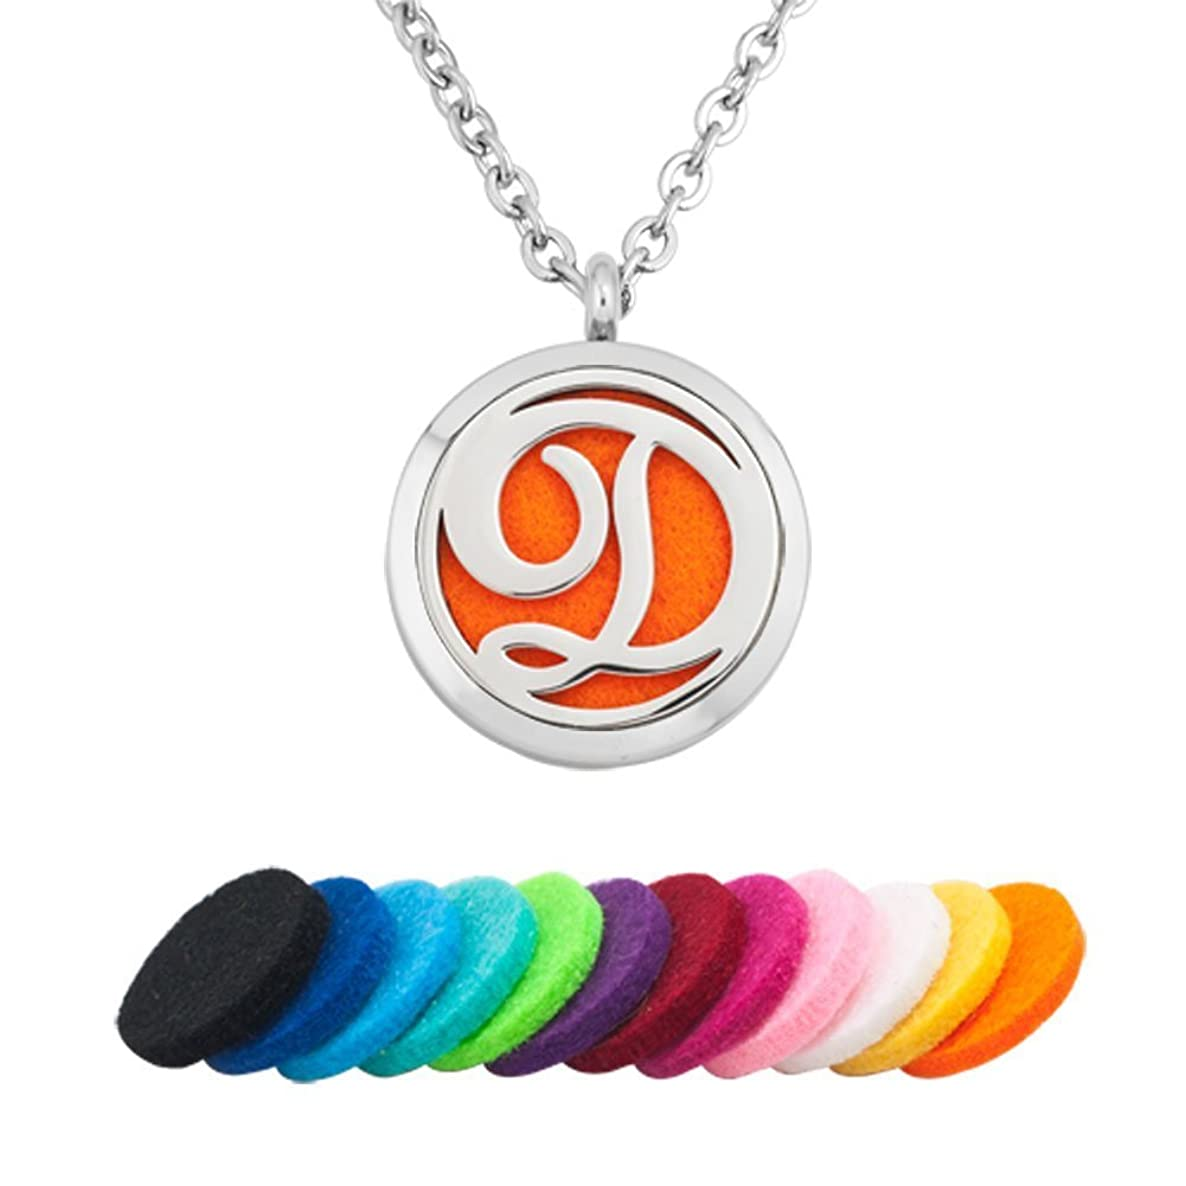 Jesse Ortega Aromatherapy Essential Oil Diffuser Locket Necklace Monogram Alphabet Initial Letter A-Z for Women Men Pendant Stainless Steel